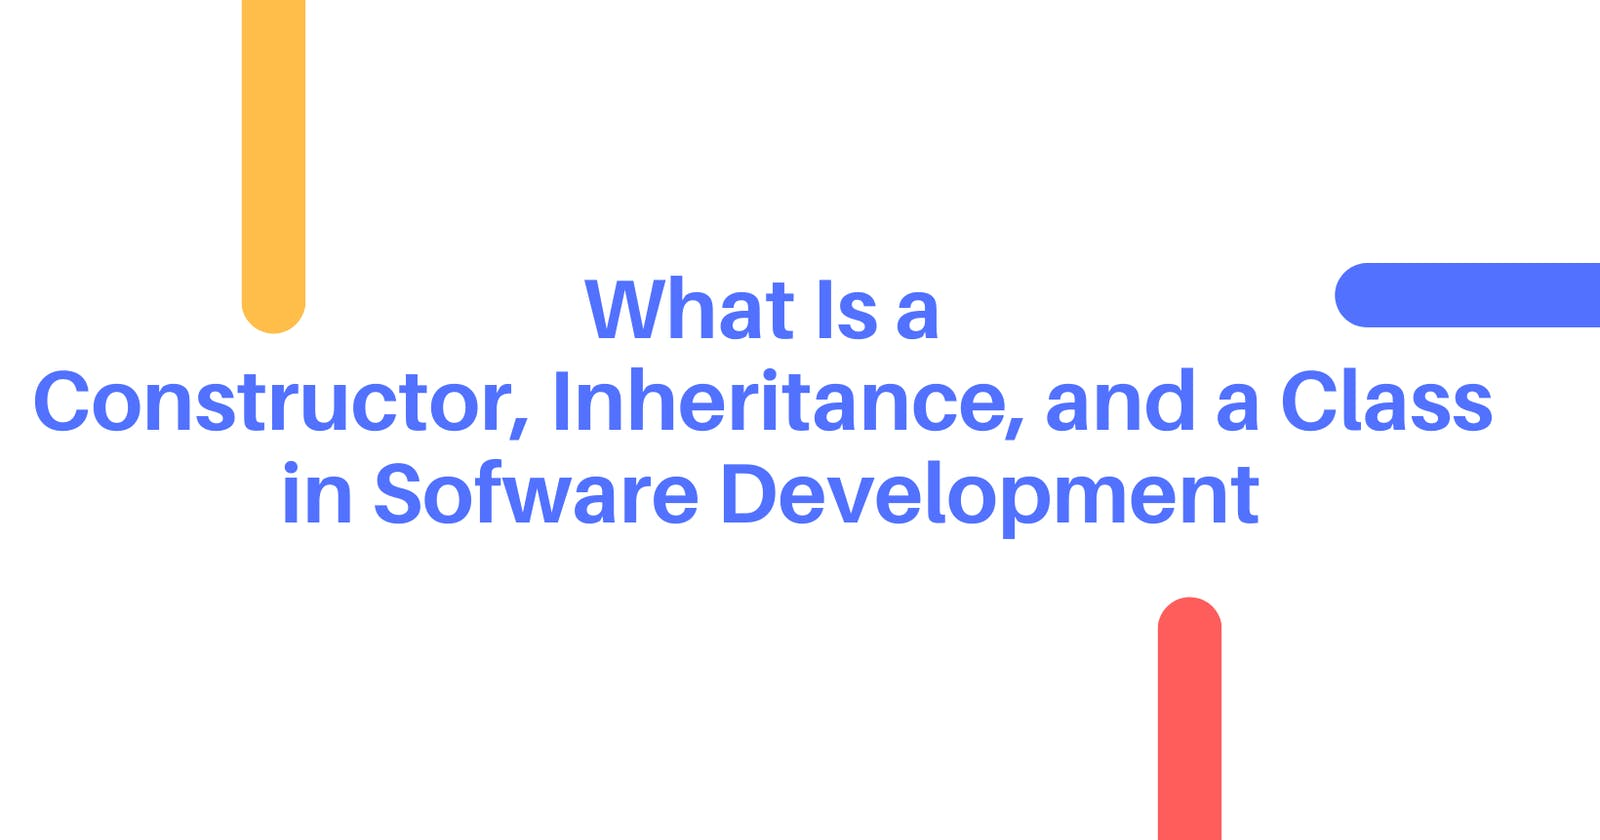 What Is a Constructor, Inheritance, and a Class in Sofware Development